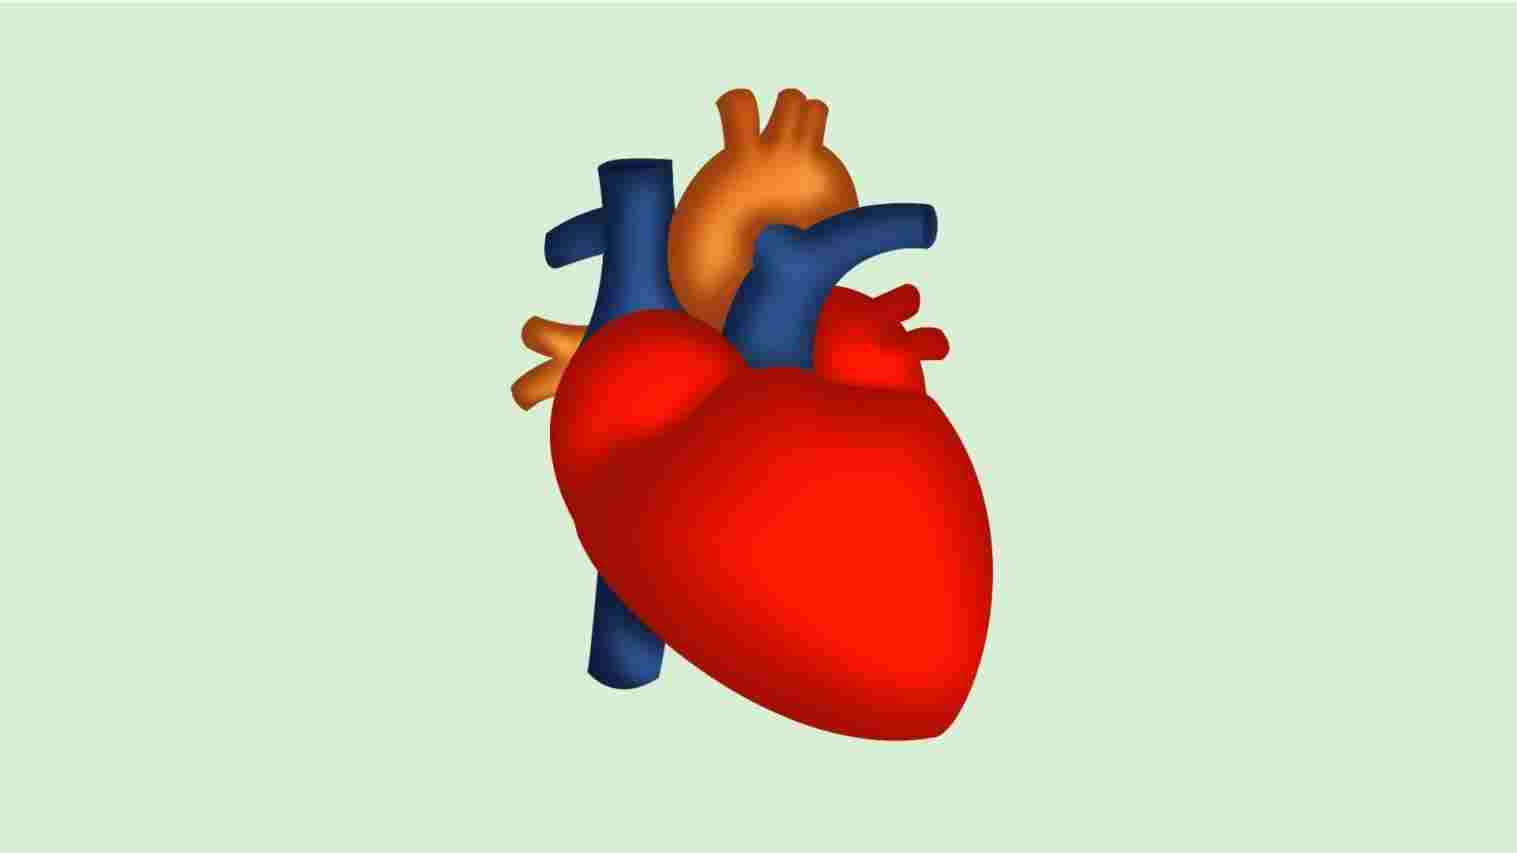 1517x853 simple human heart drawing simple human heart diagram drawing